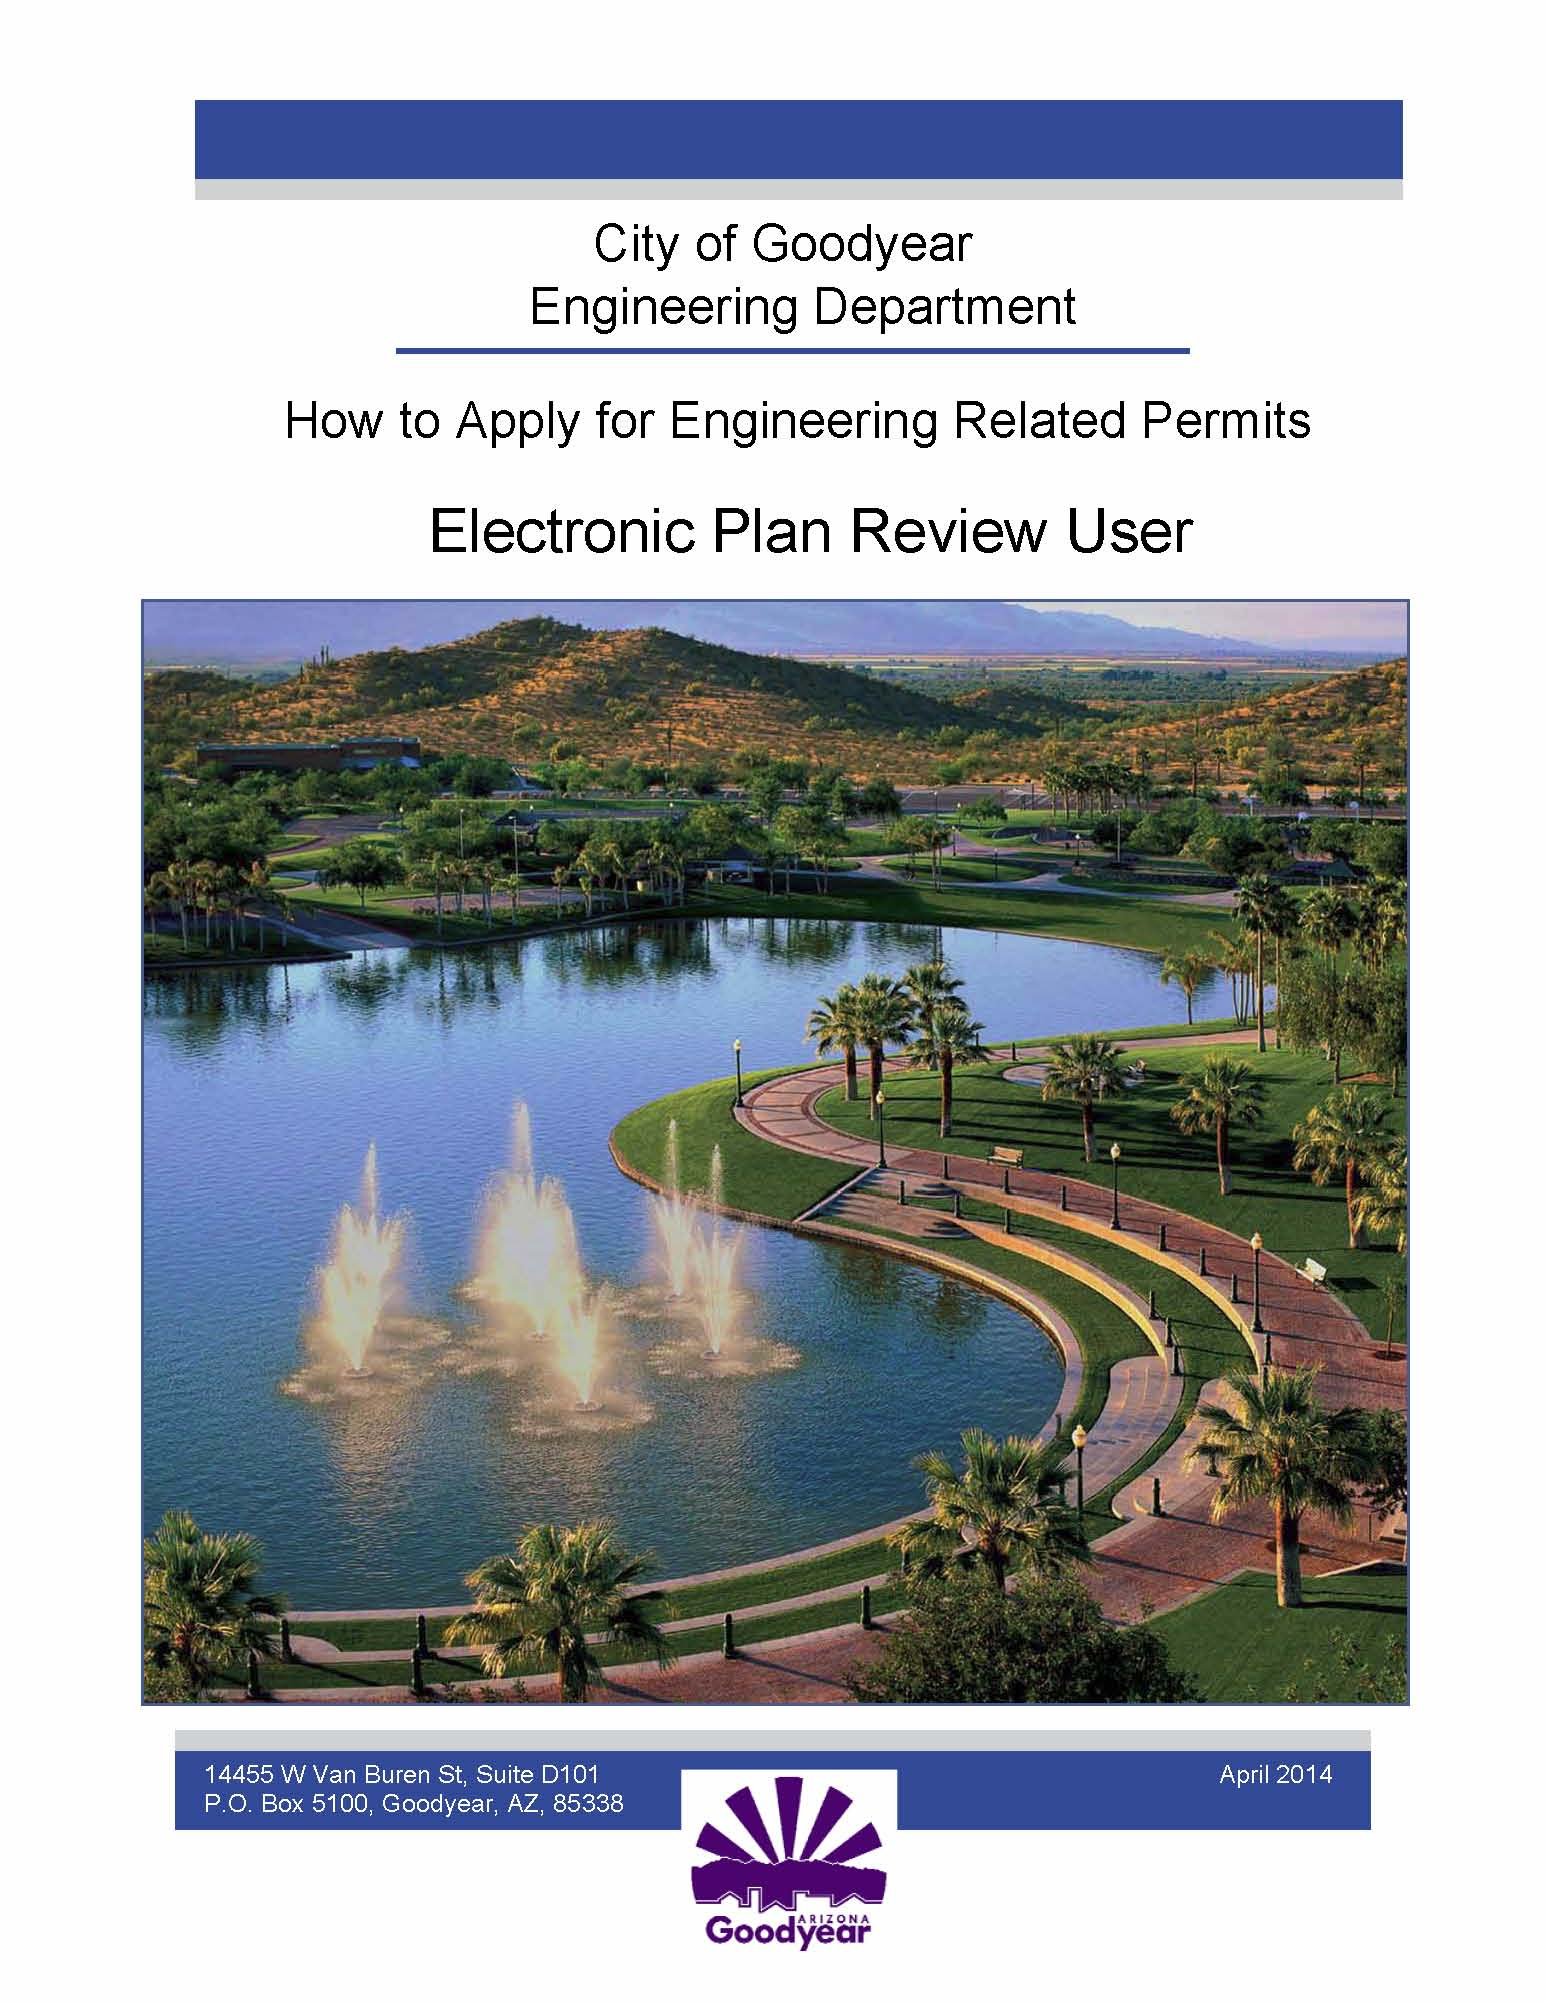 Electronic Plan Review Applicant User Guide_Page_01